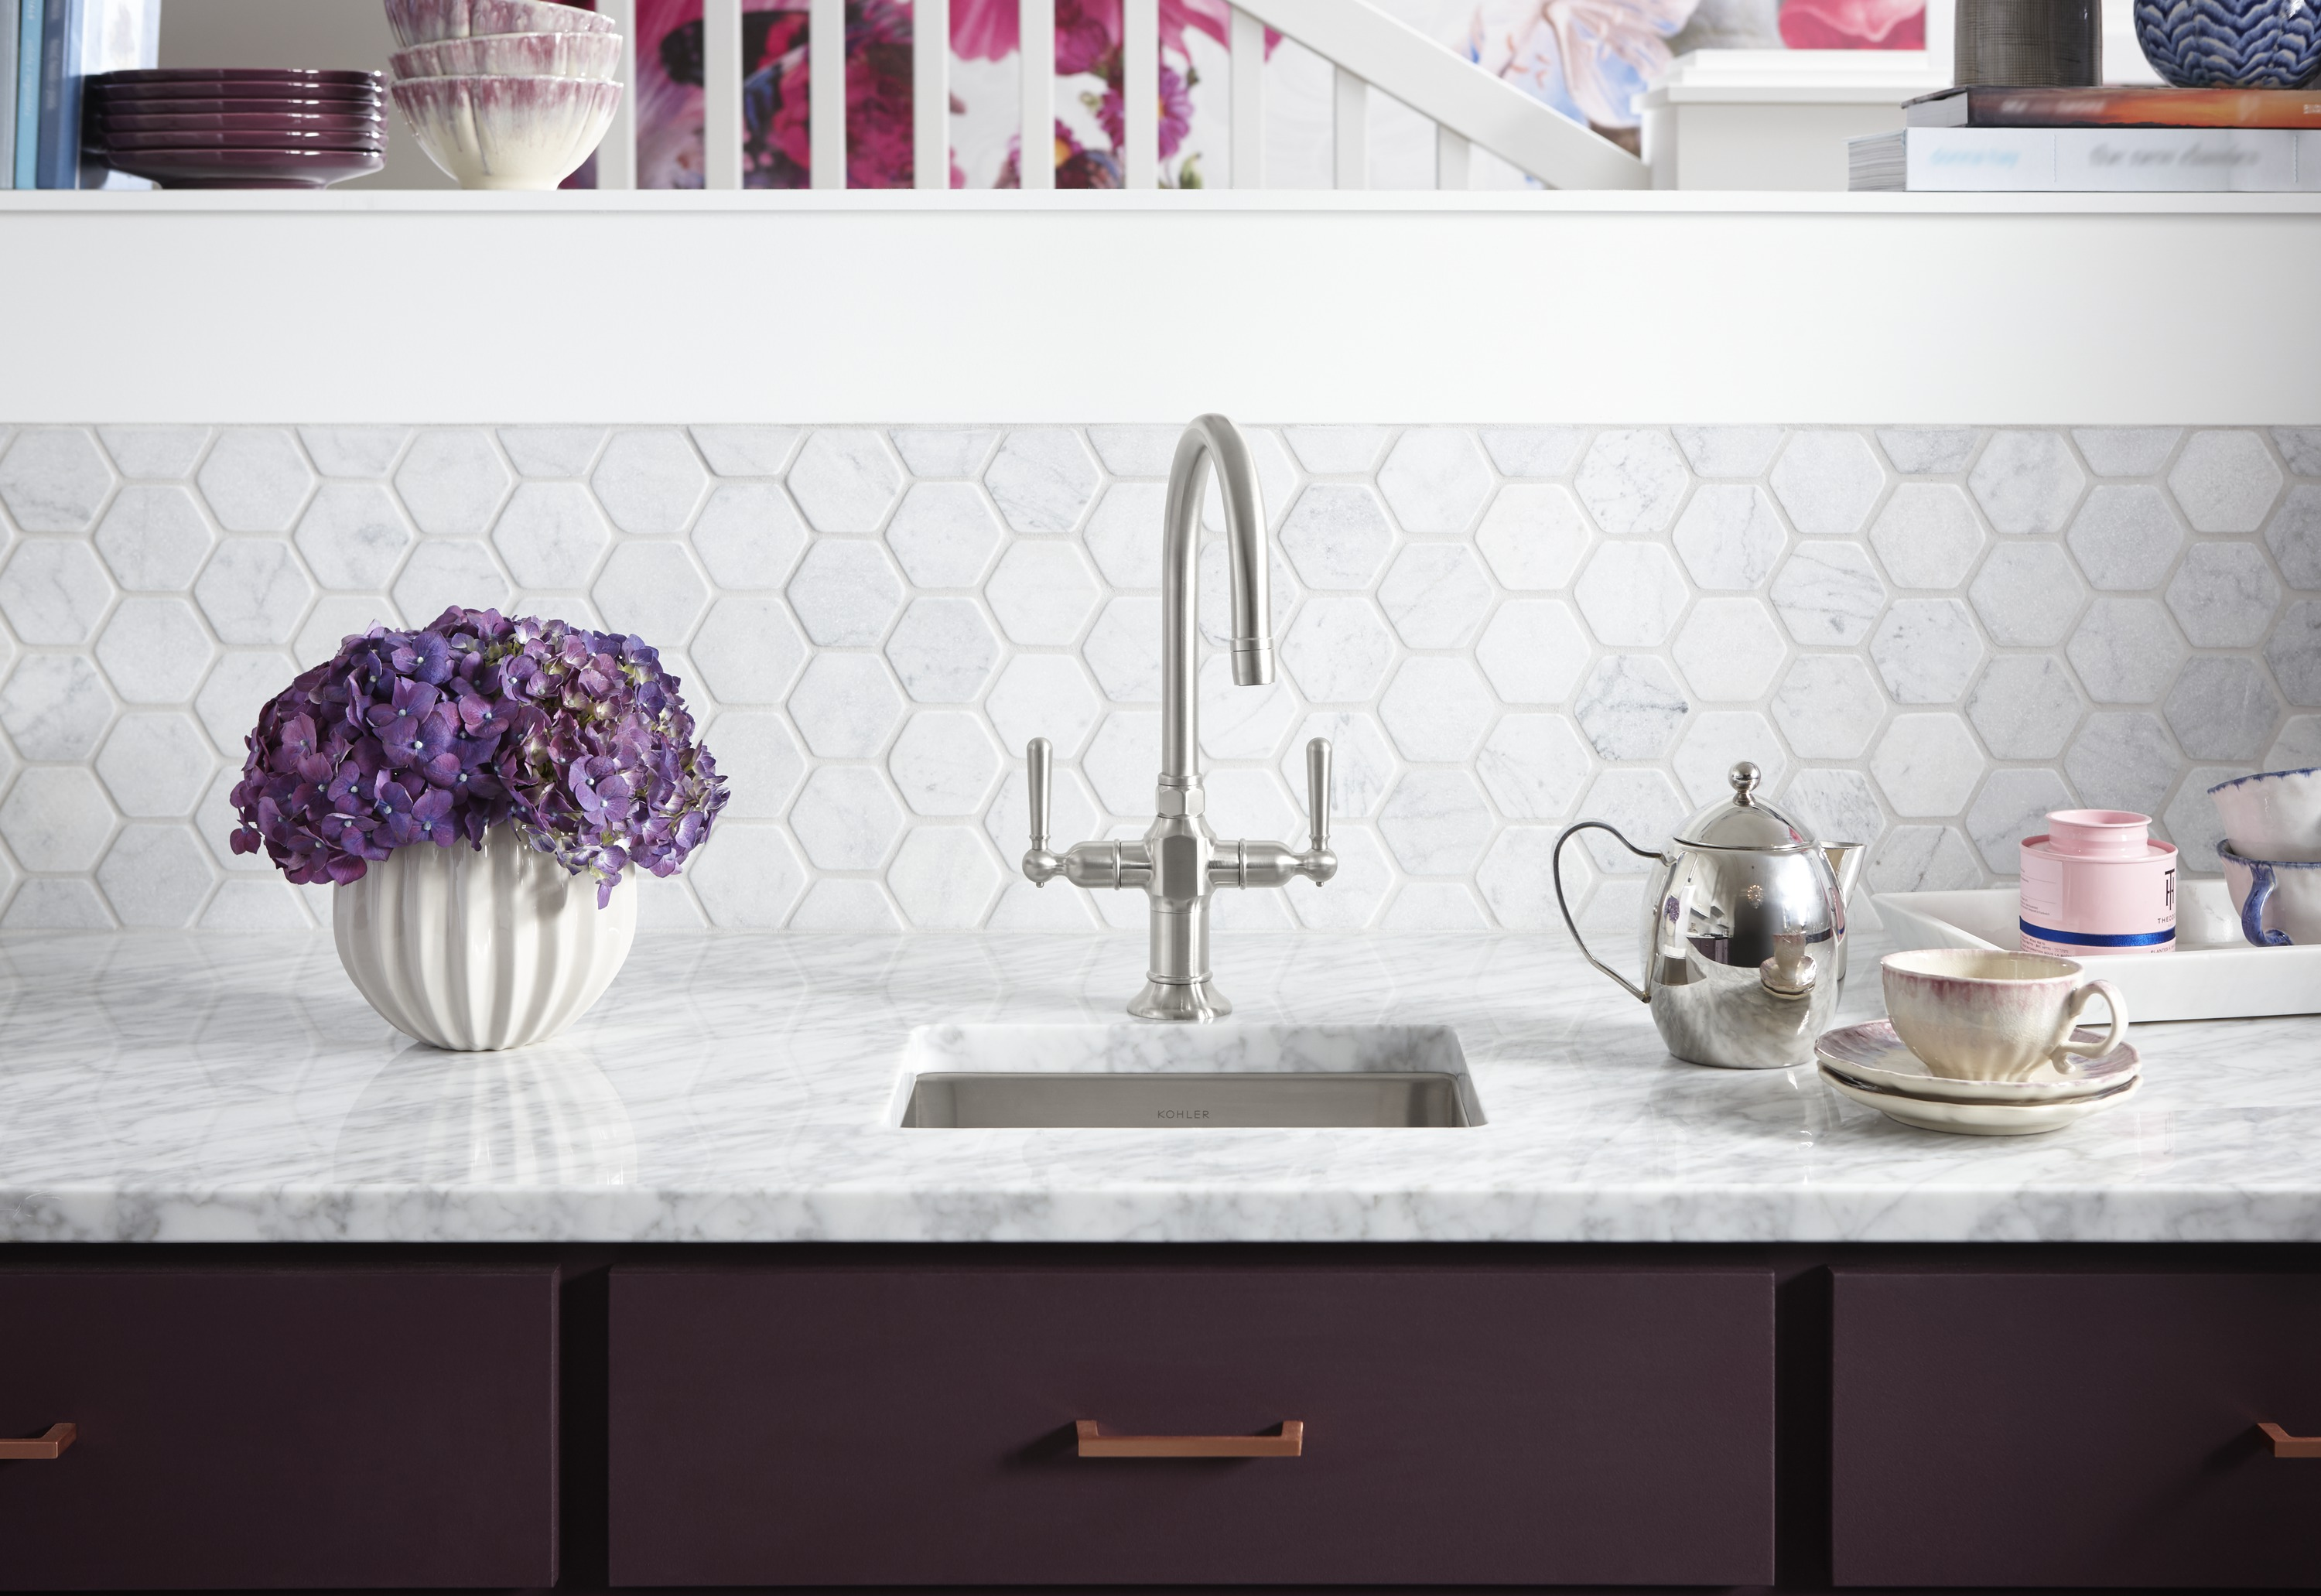 HiRise™ bar faucet     Vault™ under-mount bar sink     Matching bar and kitchen sink faucets let you coordinate your primary, prep and cooking areas.